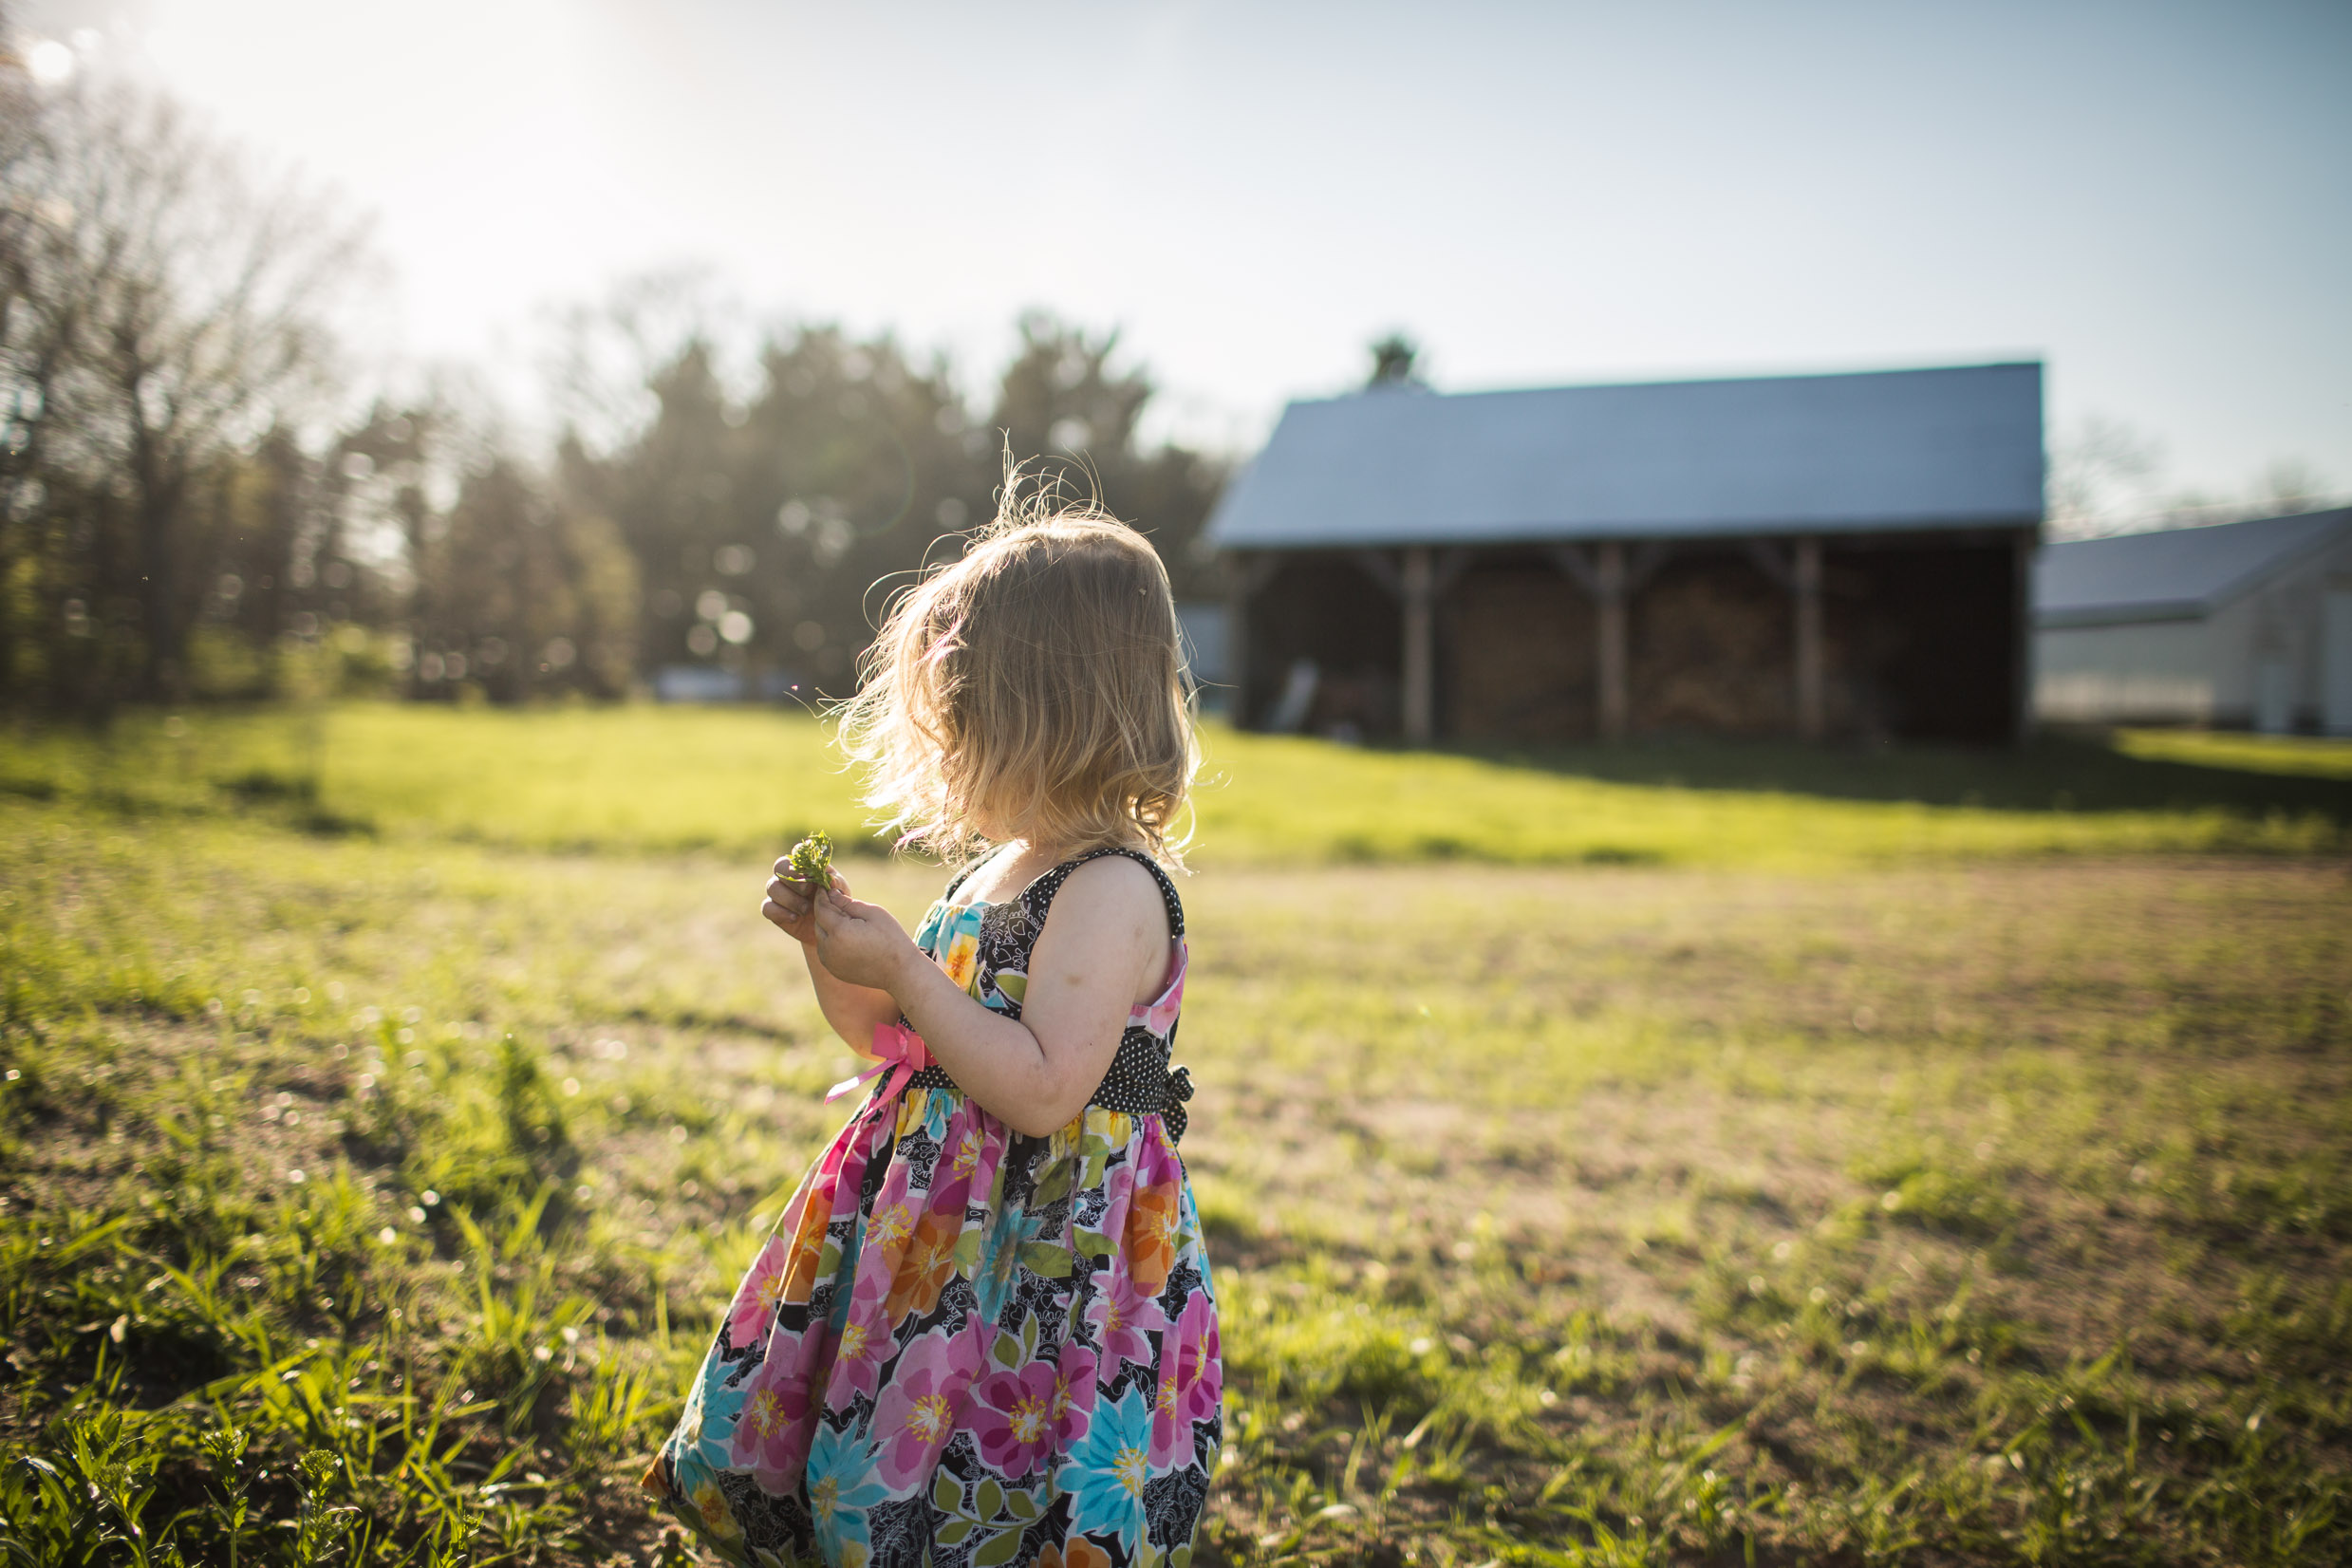 Exploring, Connected, Powerful, Lifestyle Family Sunset Session, Farm, Indiana, Laura Duggleby Photography-20.JPG